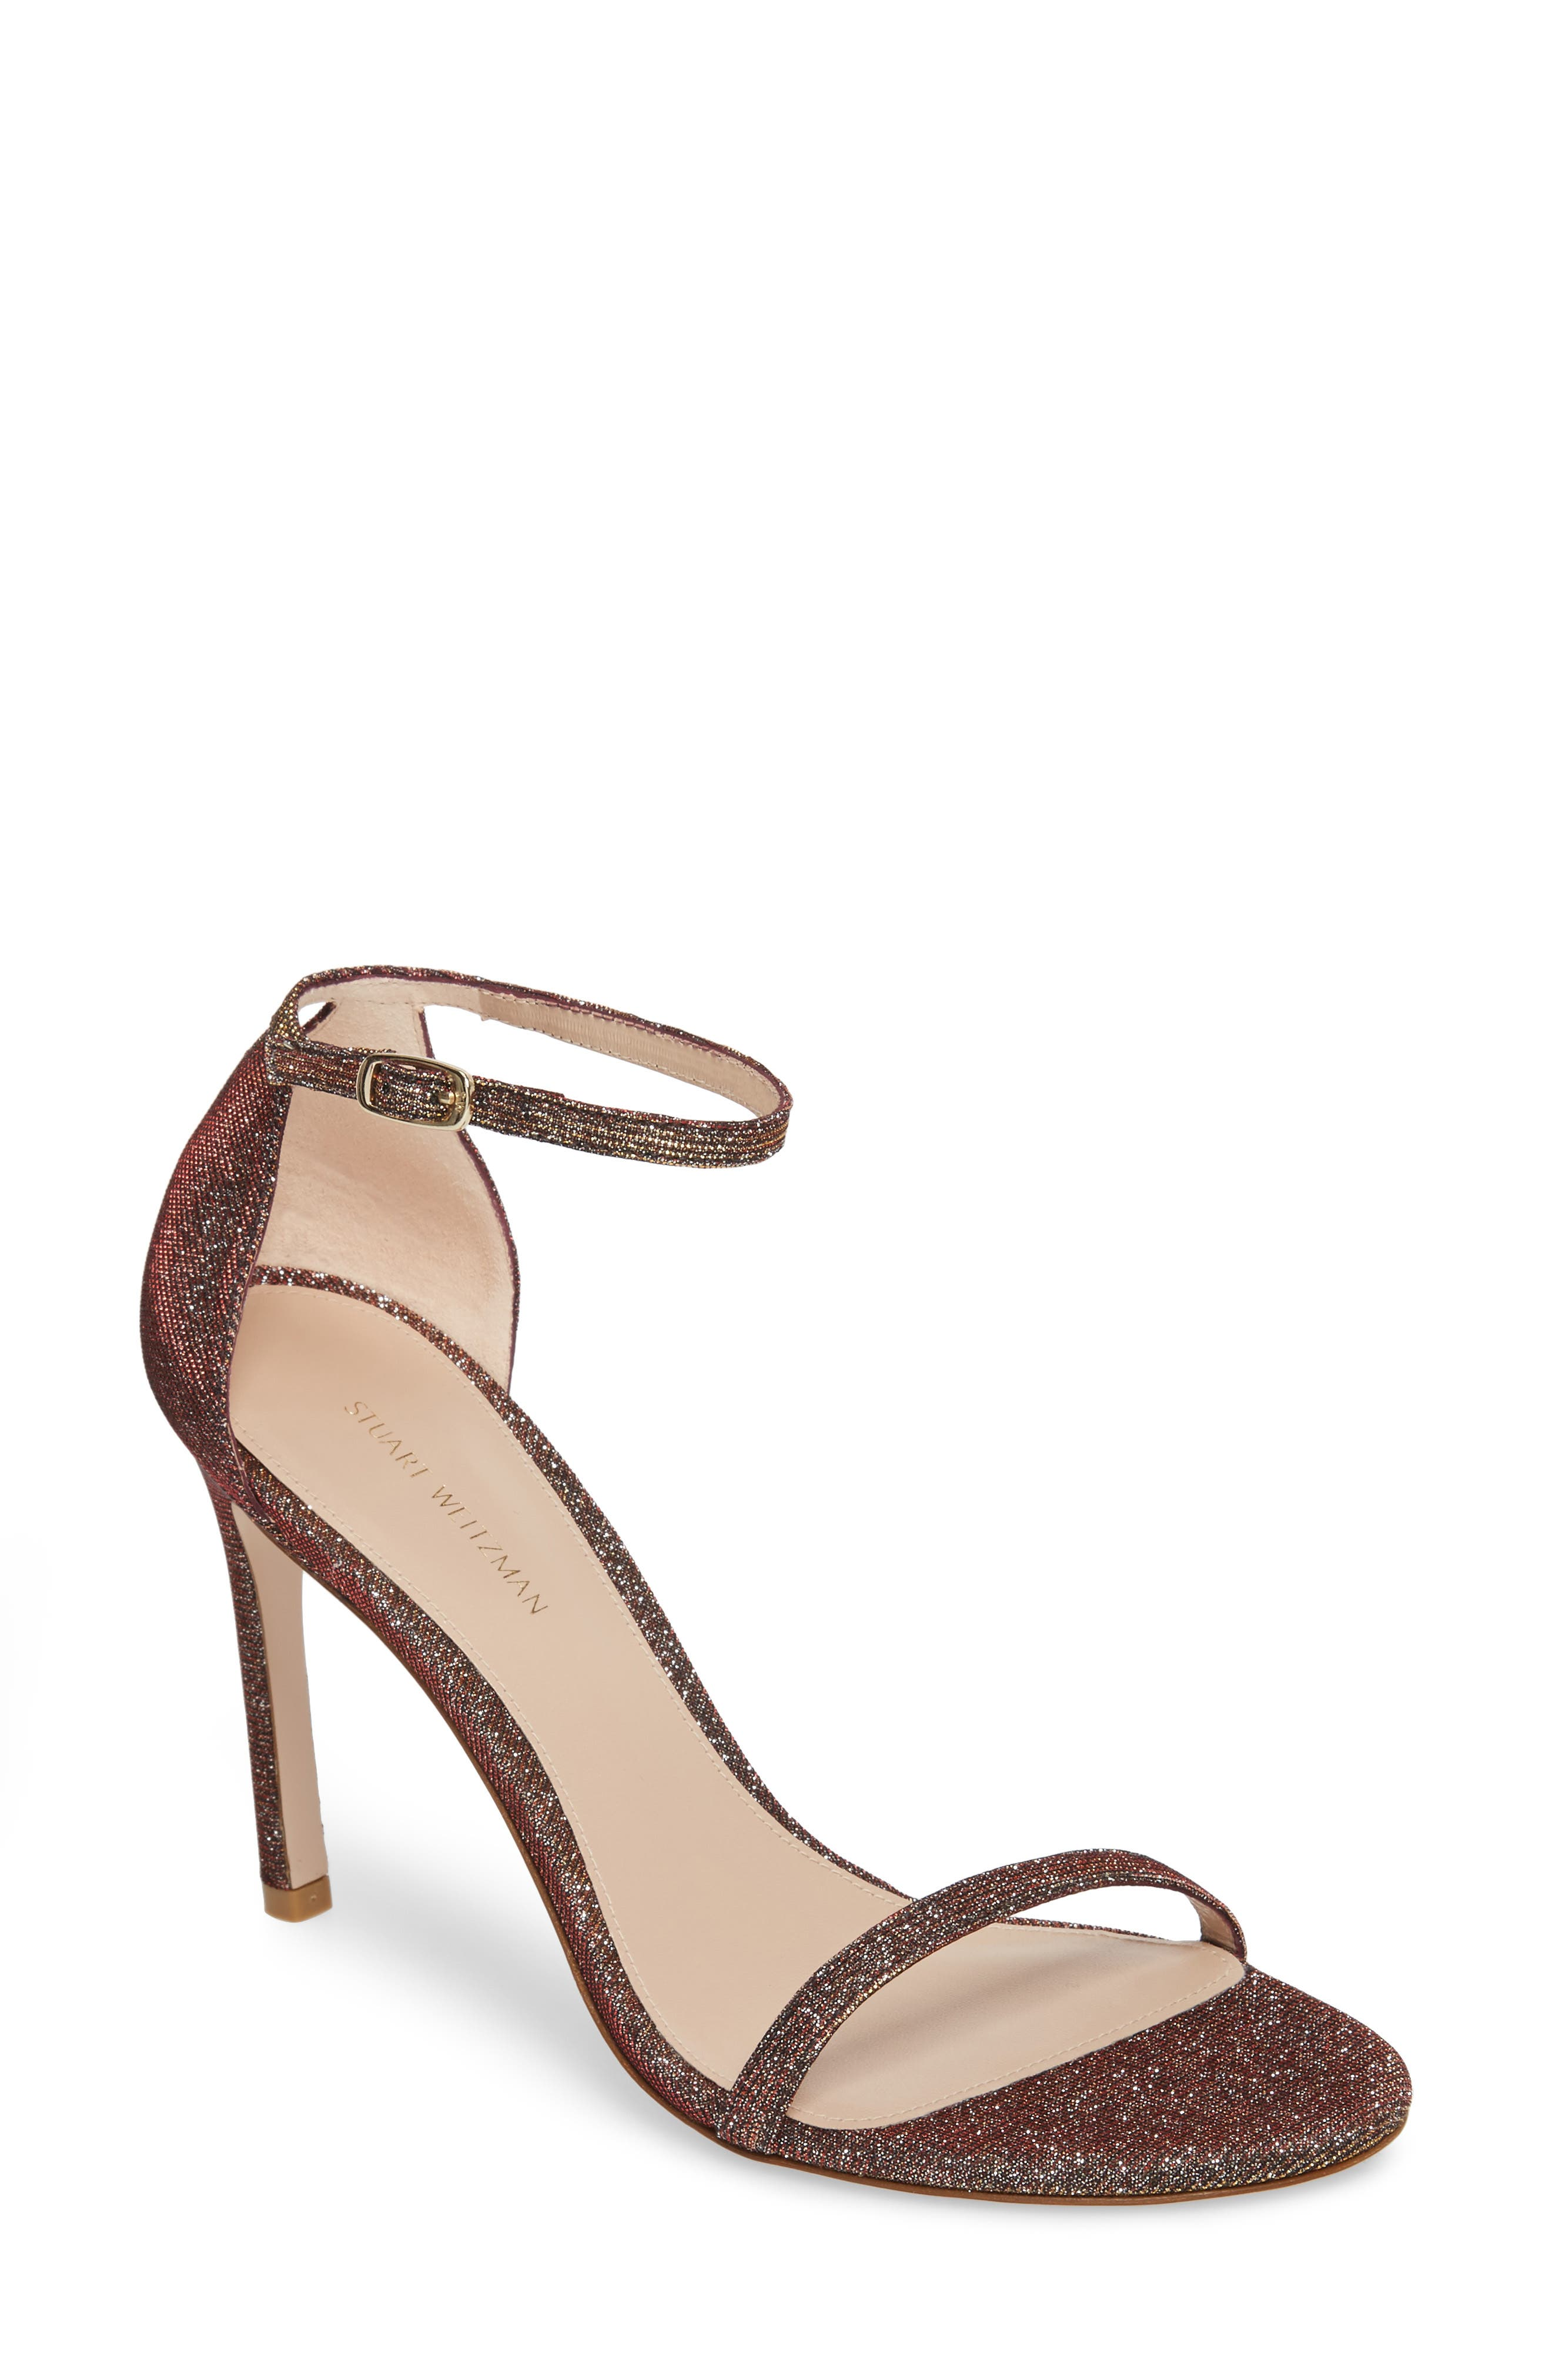 Nudistsong Ankle Strap Sandal,                             Main thumbnail 7, color,